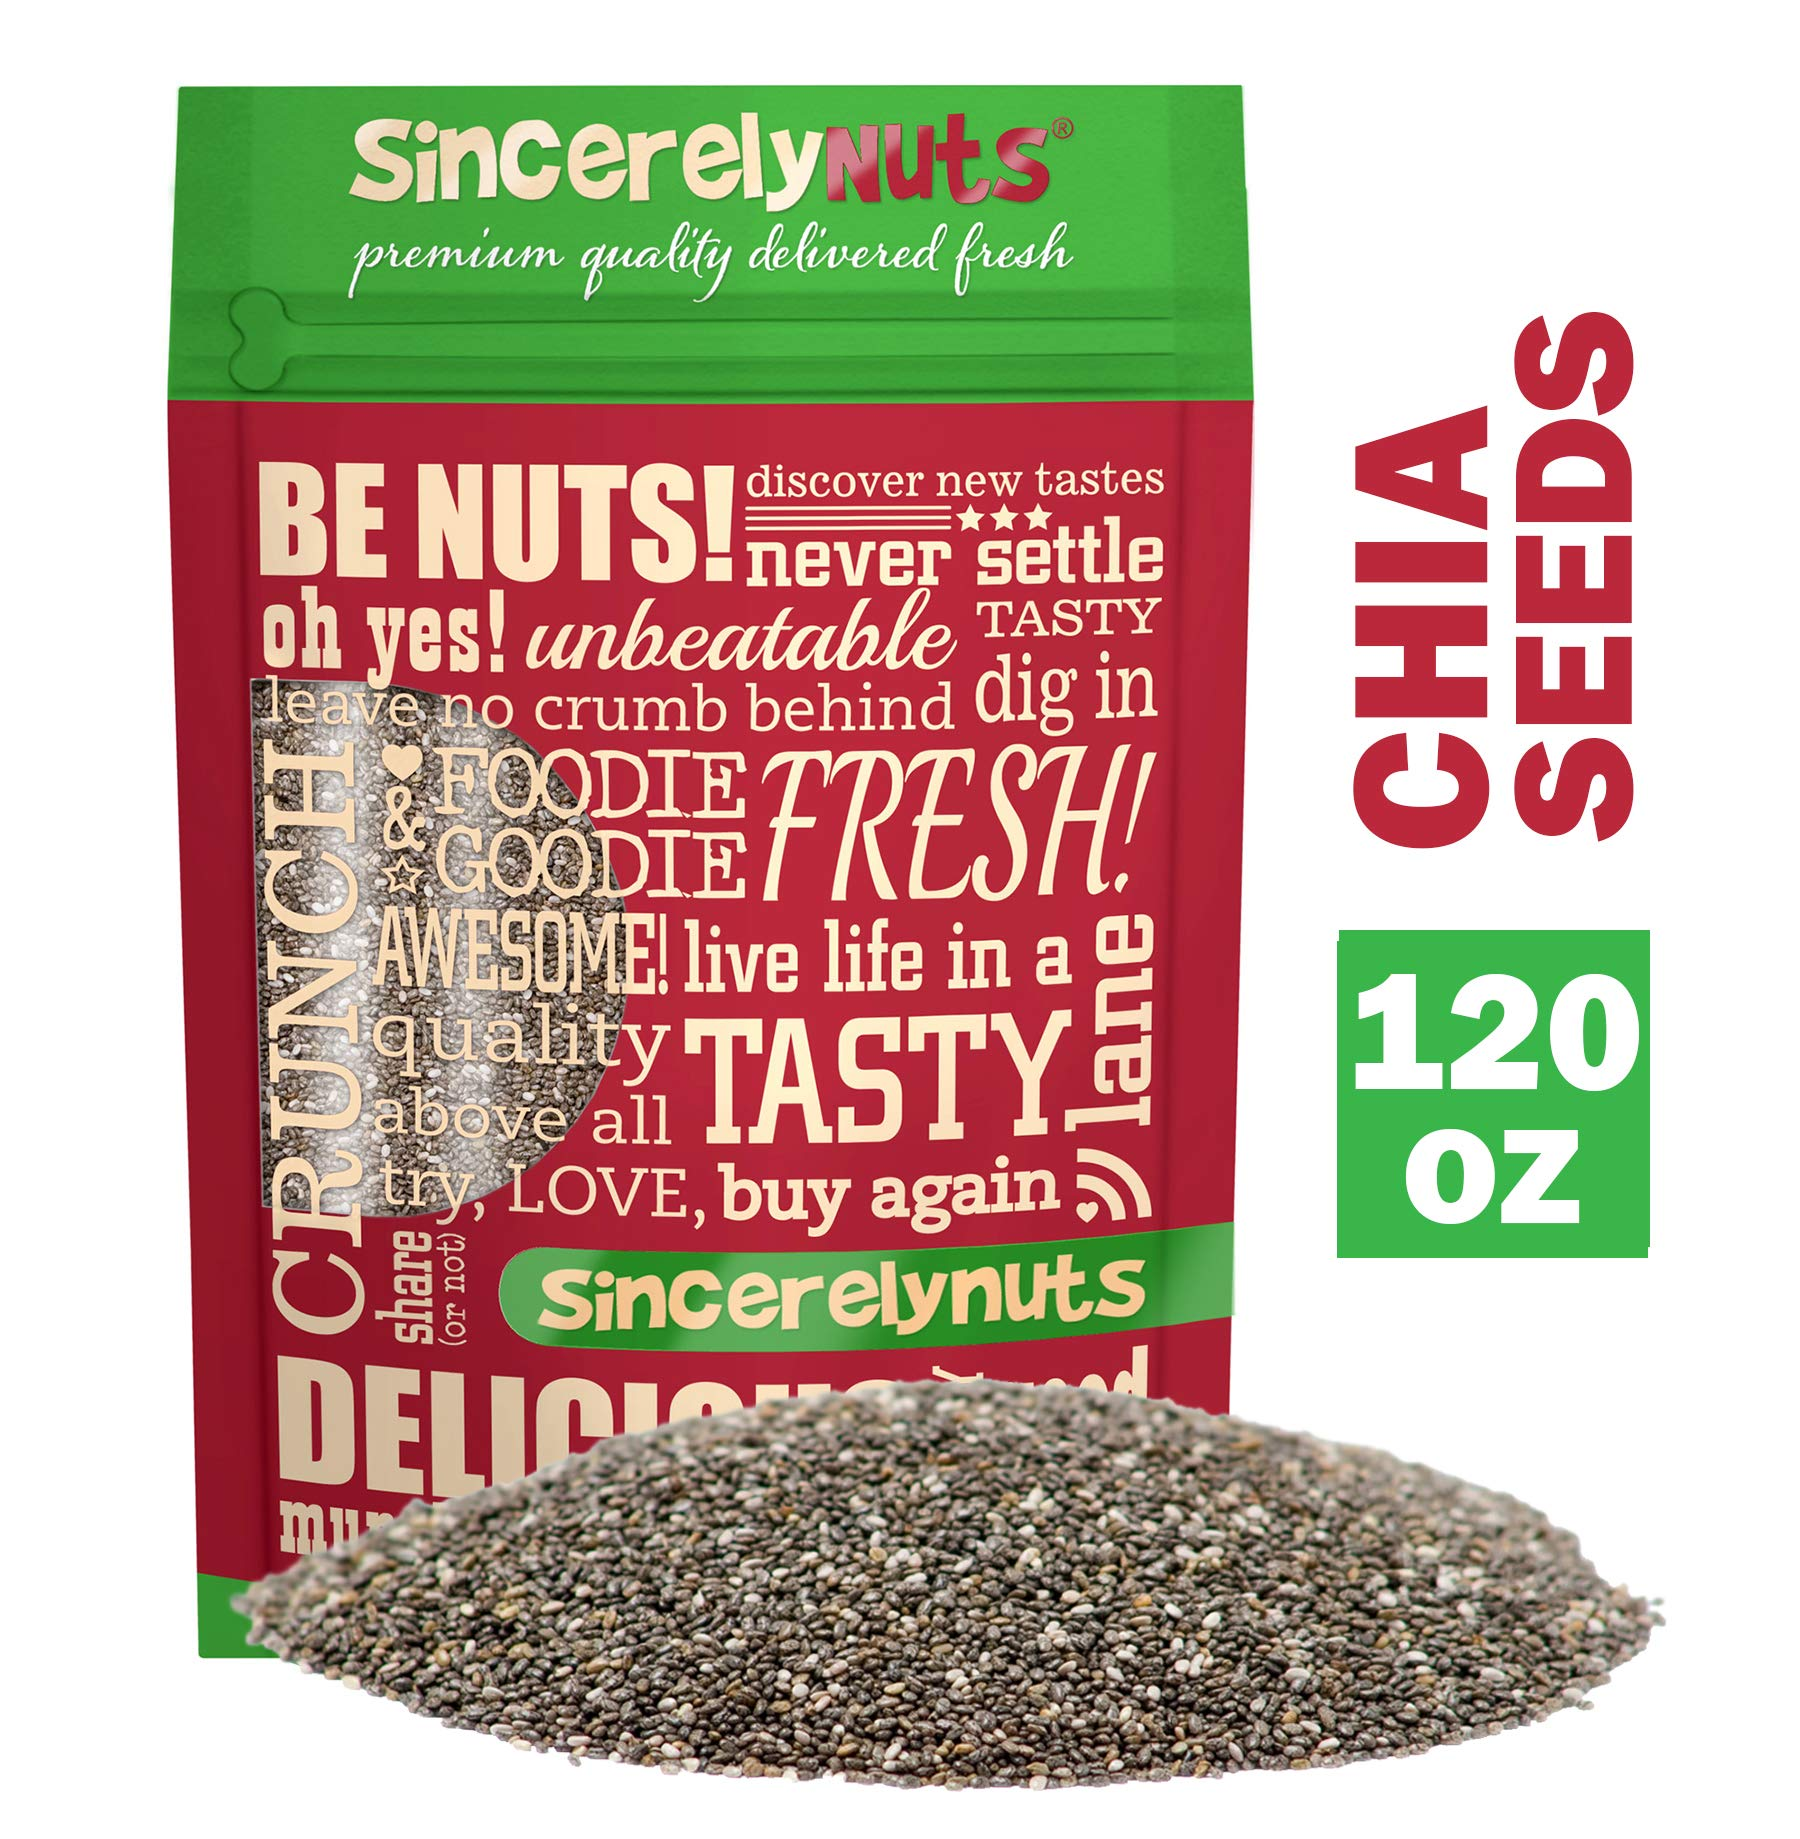 Sincerely Nuts Black Chia Seeds (7.5 lb bag) - Natural Superfood | Raw, Gluten Free, Vegan & Kosher | Healthy Snack Food & Smoothie Thickener | Amazing Source of Protein, Omega 3, Fiber, Vitamins by Sincerely Nuts